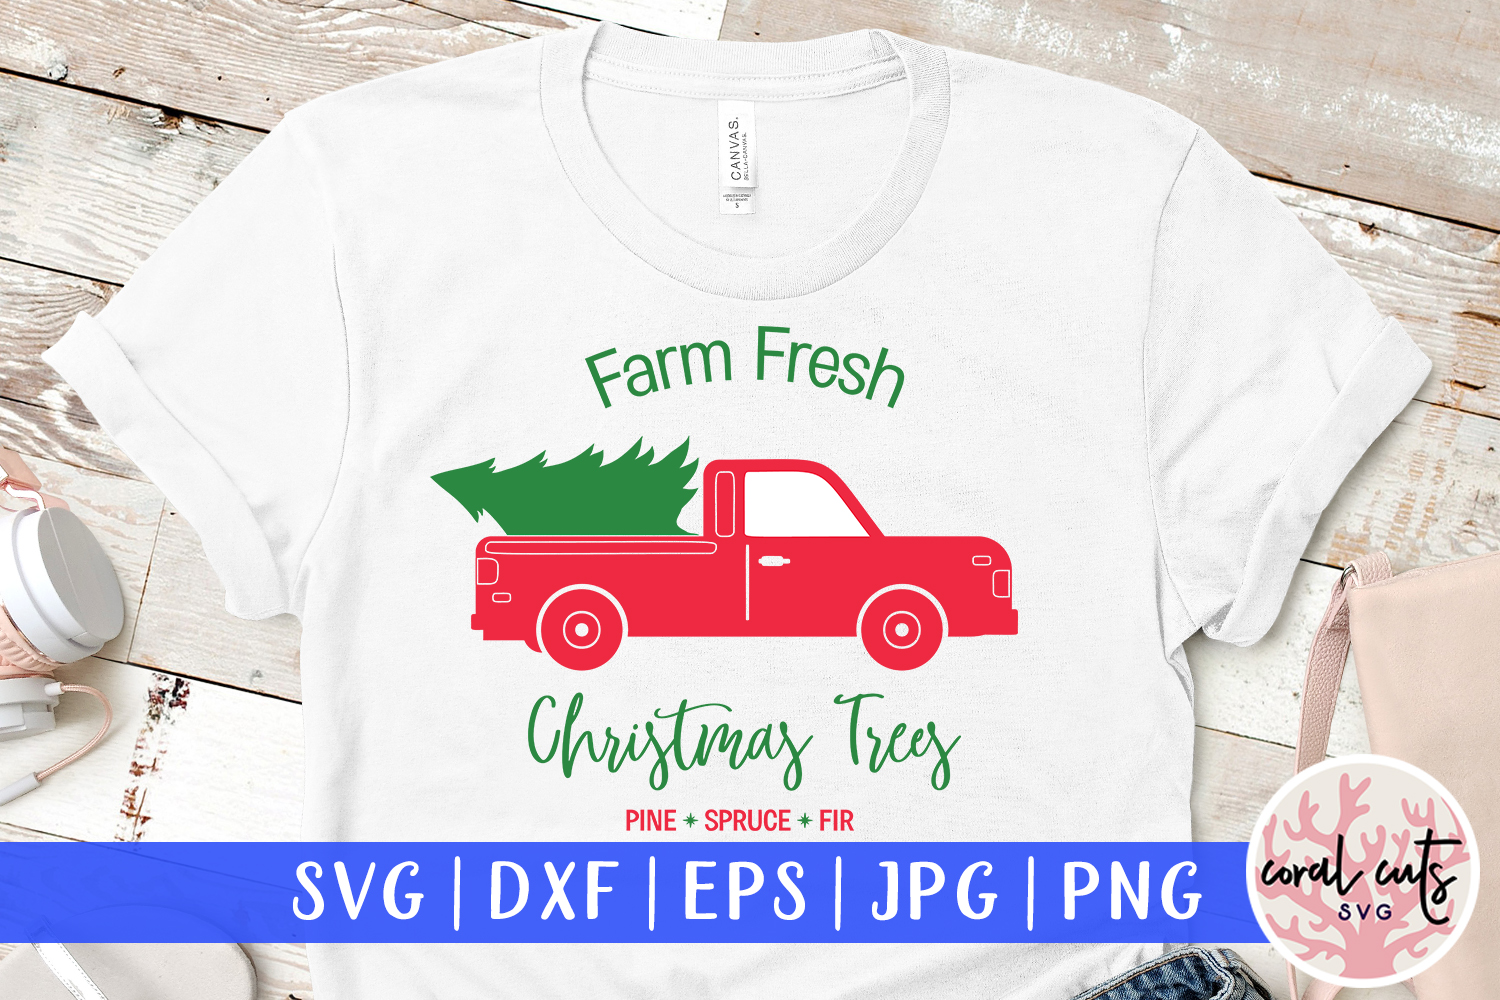 Download Free Farm Fresh Christmas Trees Pine Spruce Graphic By Coralcutssvg for Cricut Explore, Silhouette and other cutting machines.